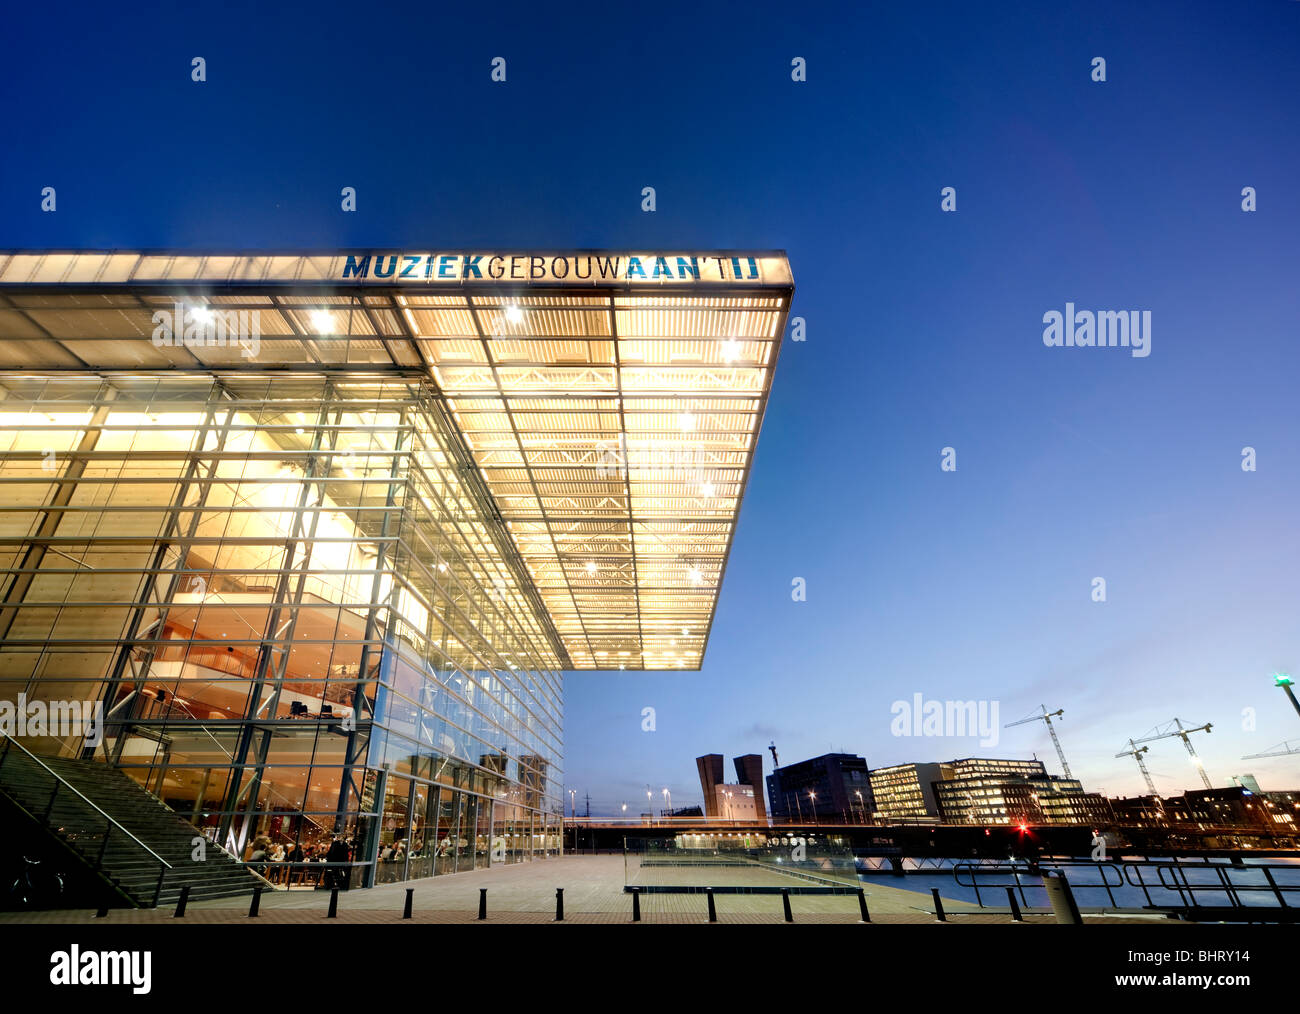 Amsterdam Muziekgebouw aan 't IJ, Music Building at the IJ, and the Star Ferry Restaurant at dusk. - Stock Image